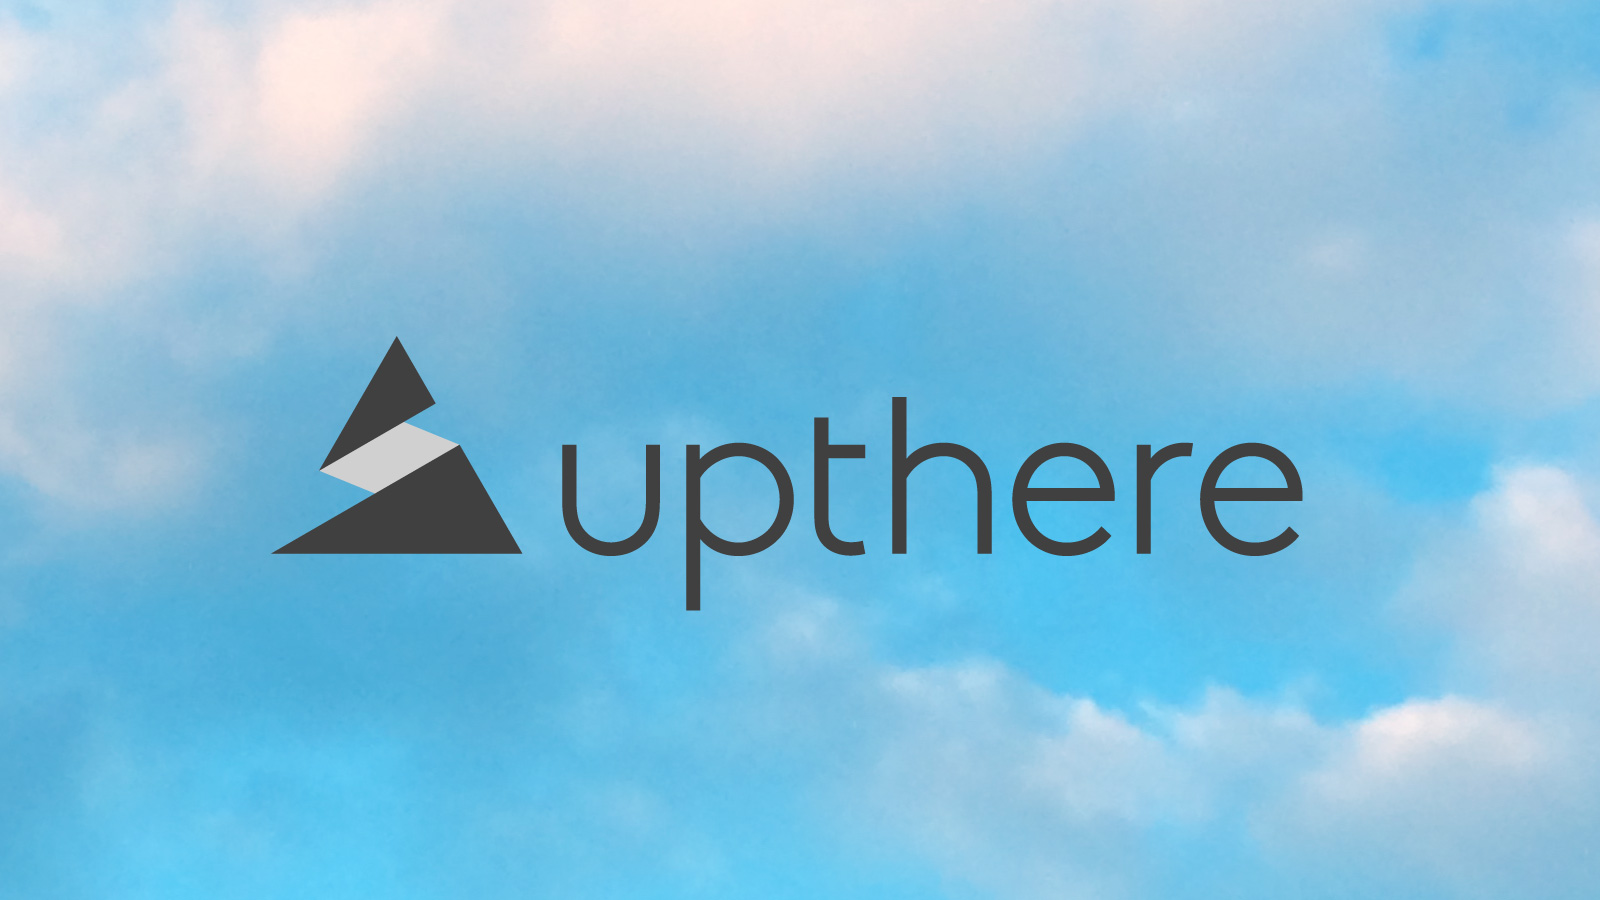 Western Digital acquires cloud services company Upthere